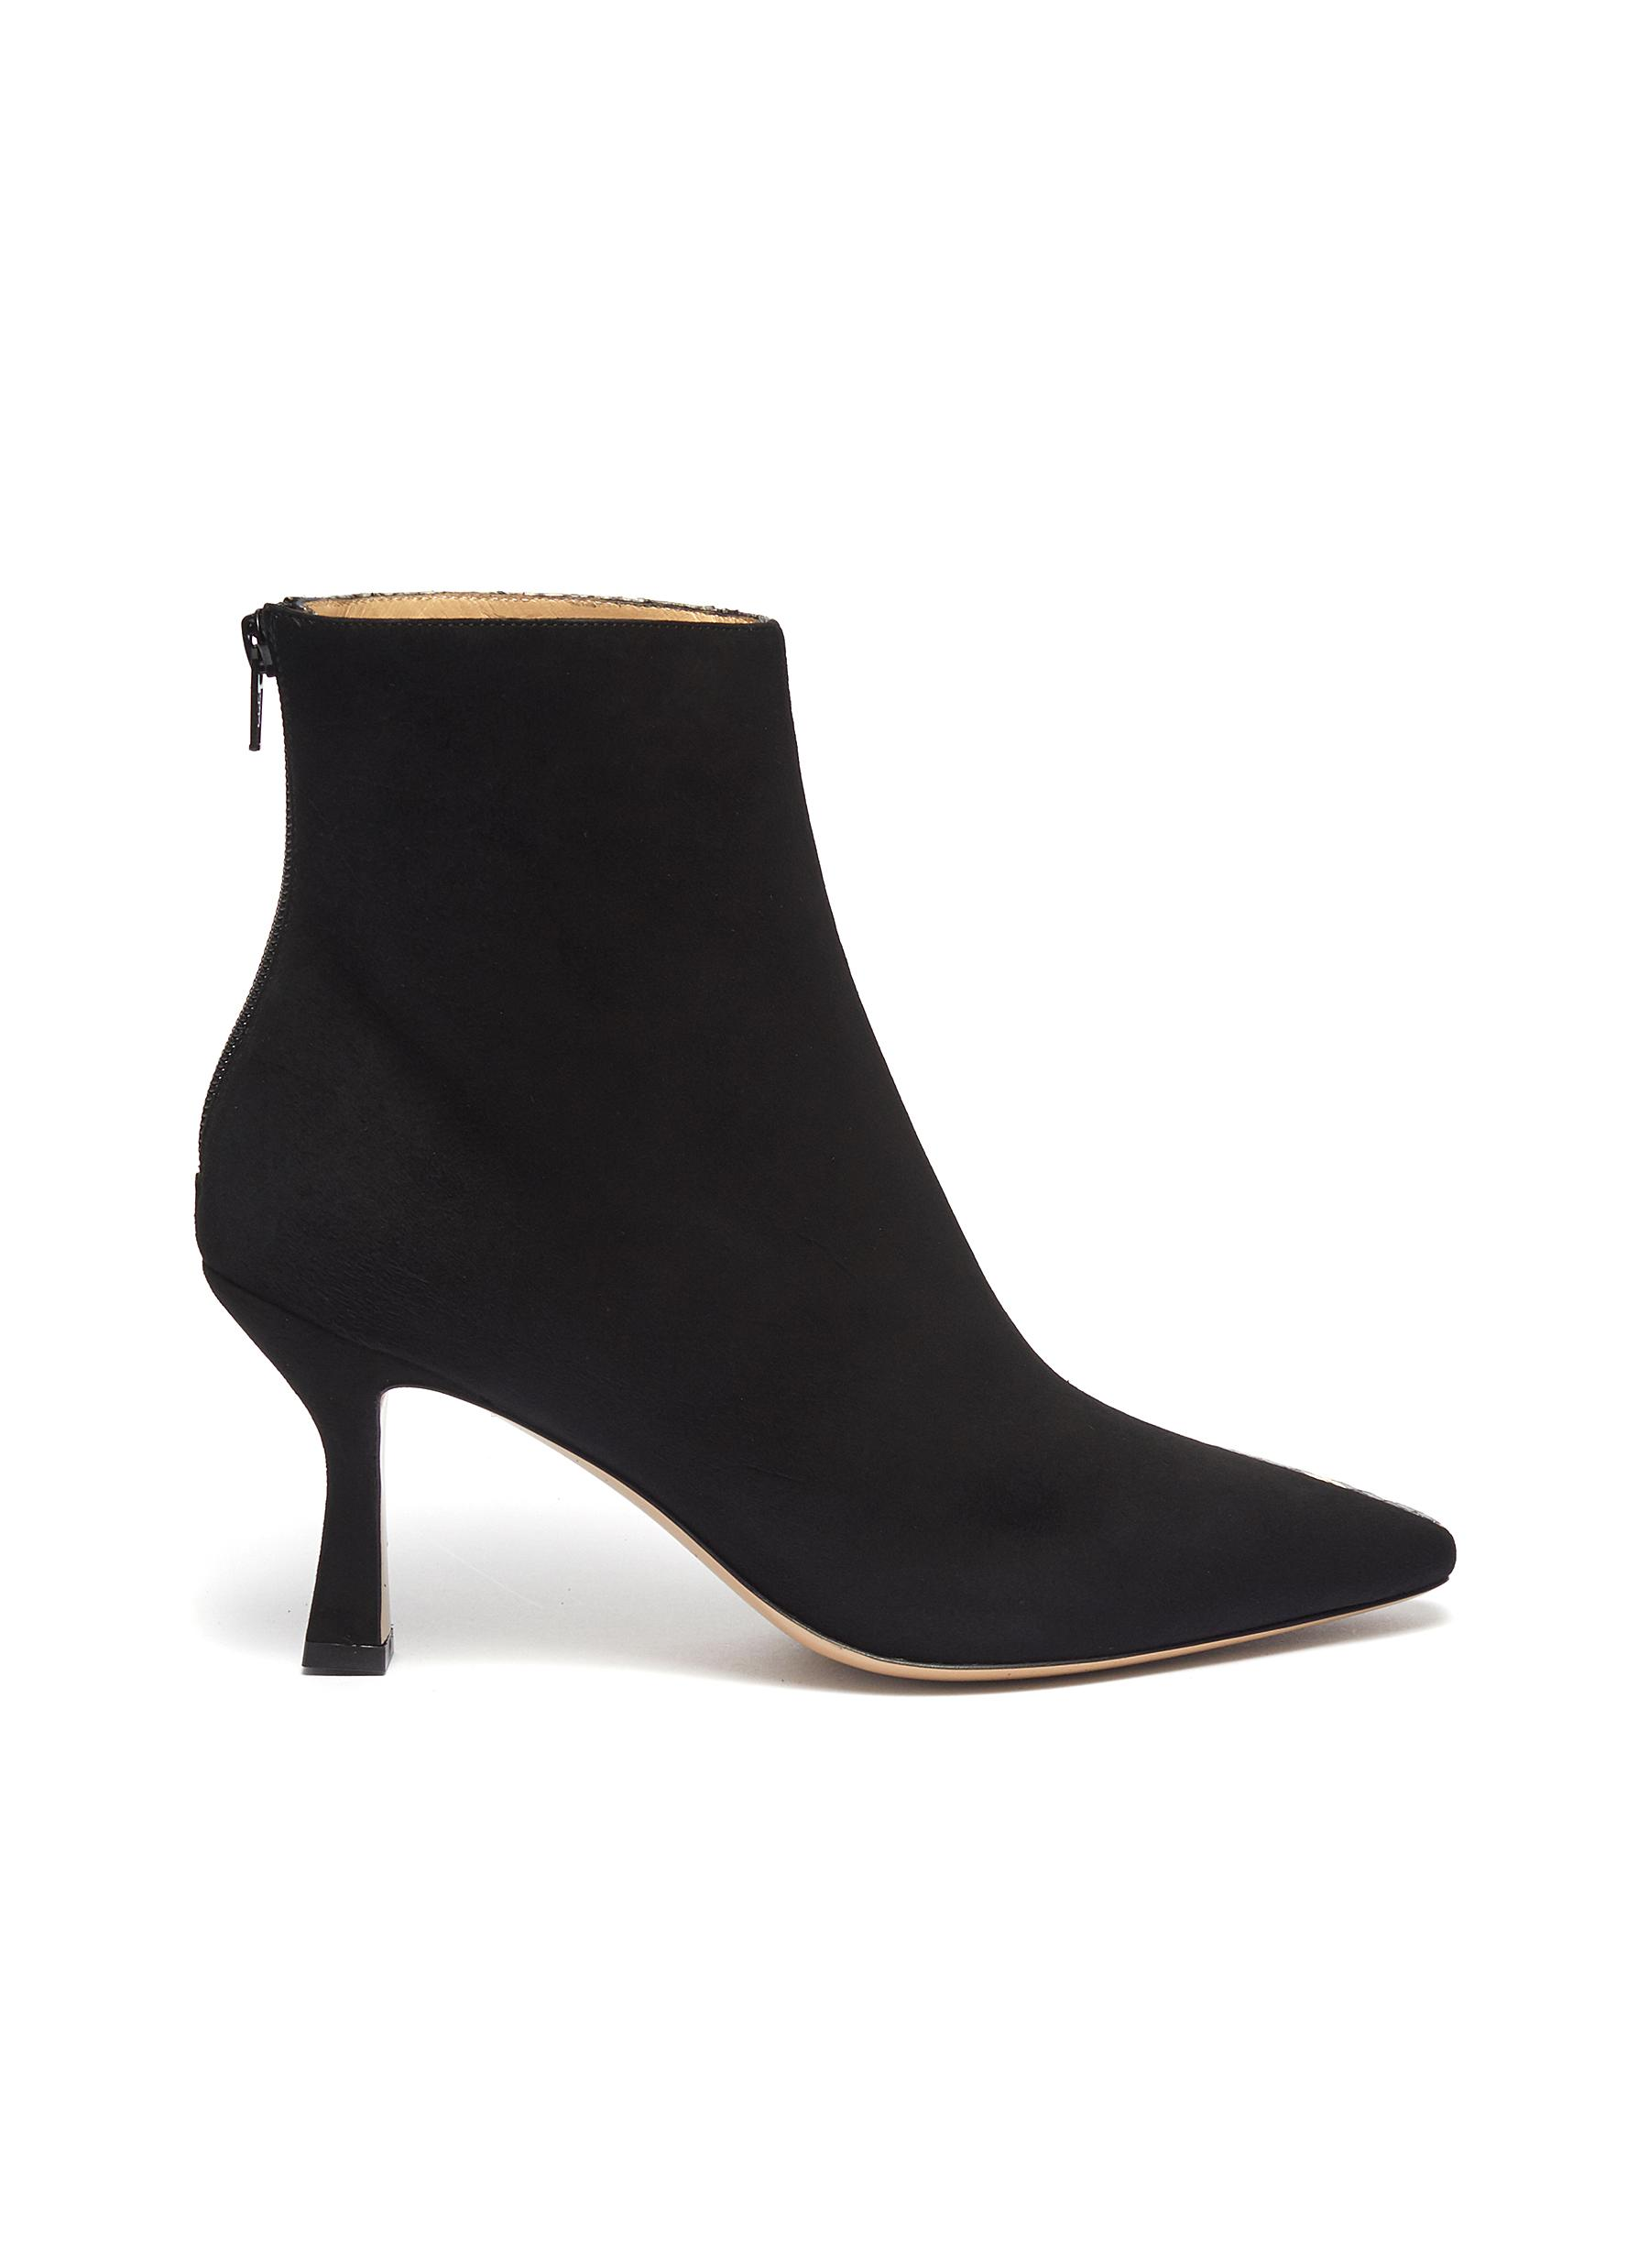 shop Fabio Rusconi 'Como' suede panel snake-embossed leather ankle boots online